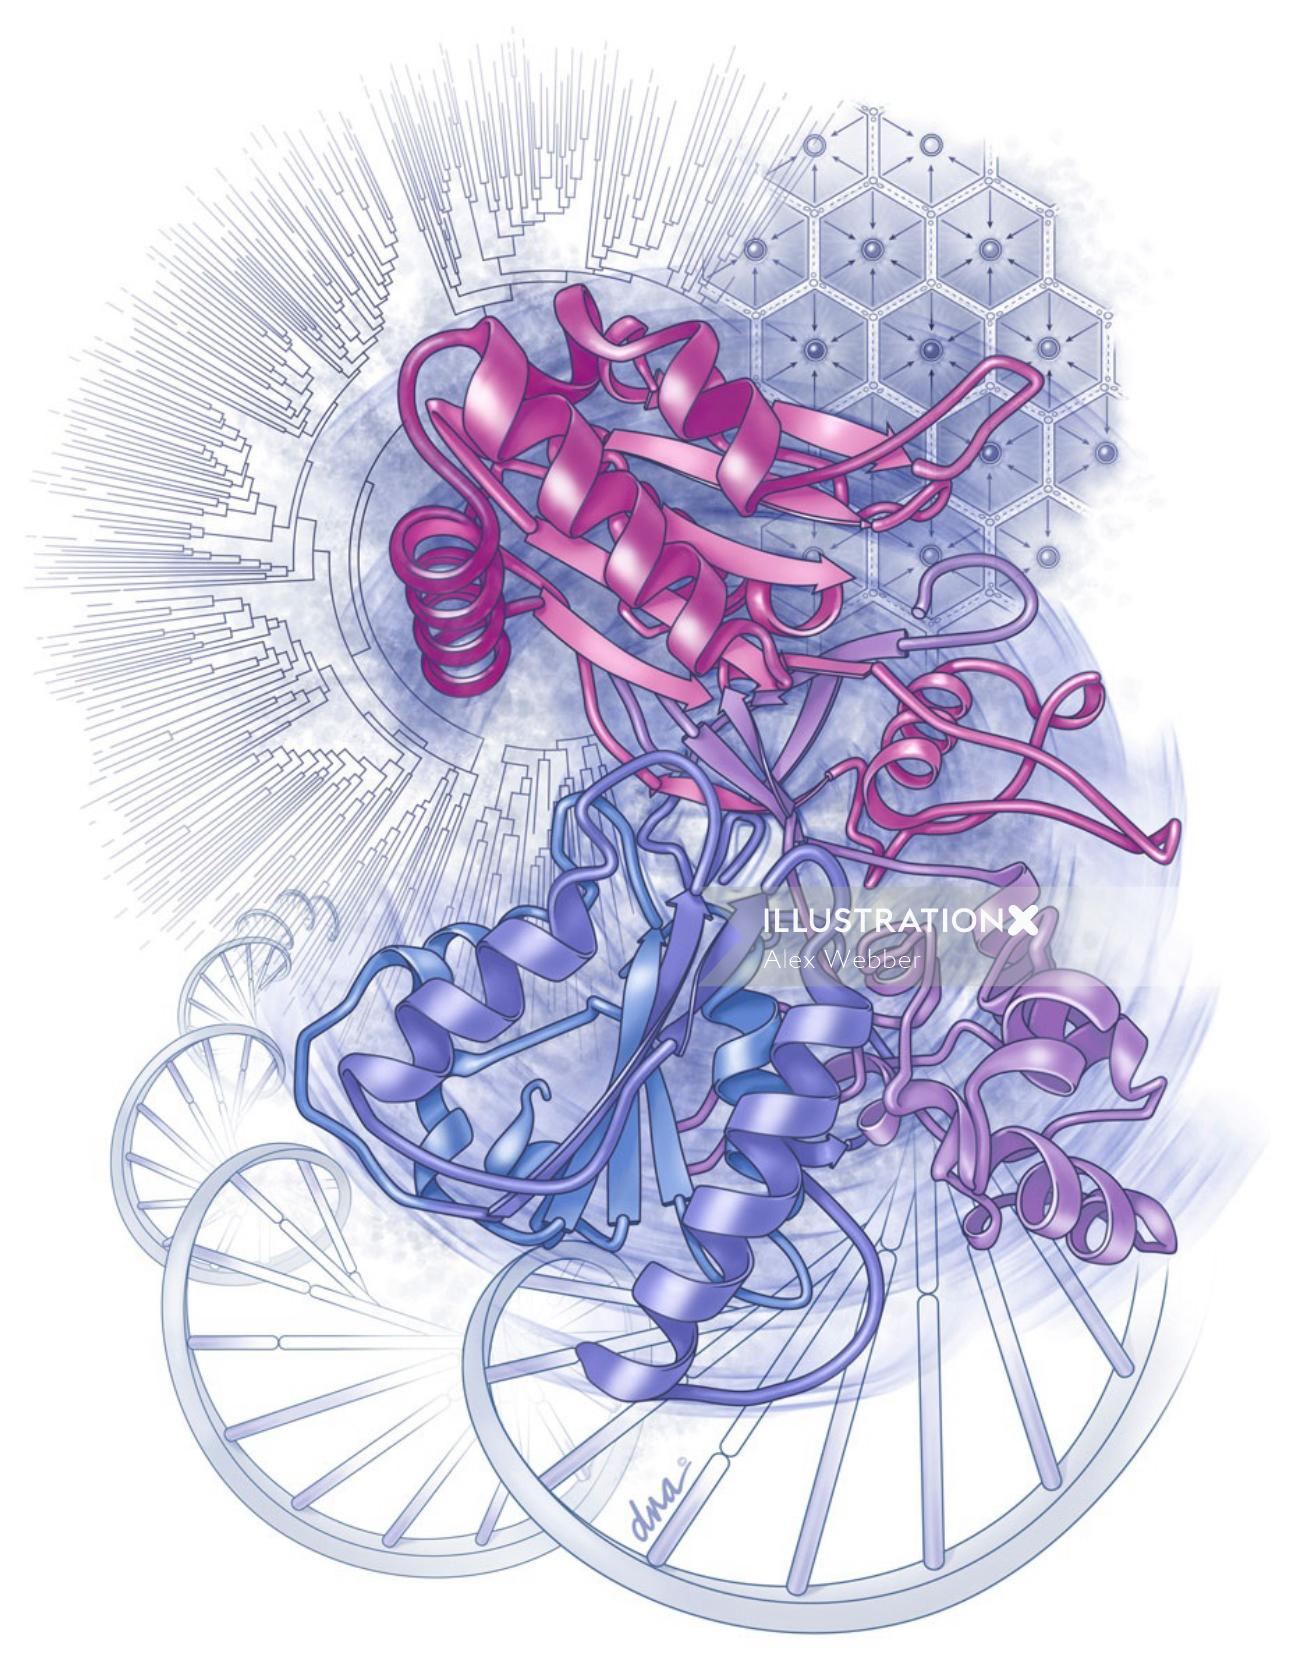 An illustration of Cytochrome P450